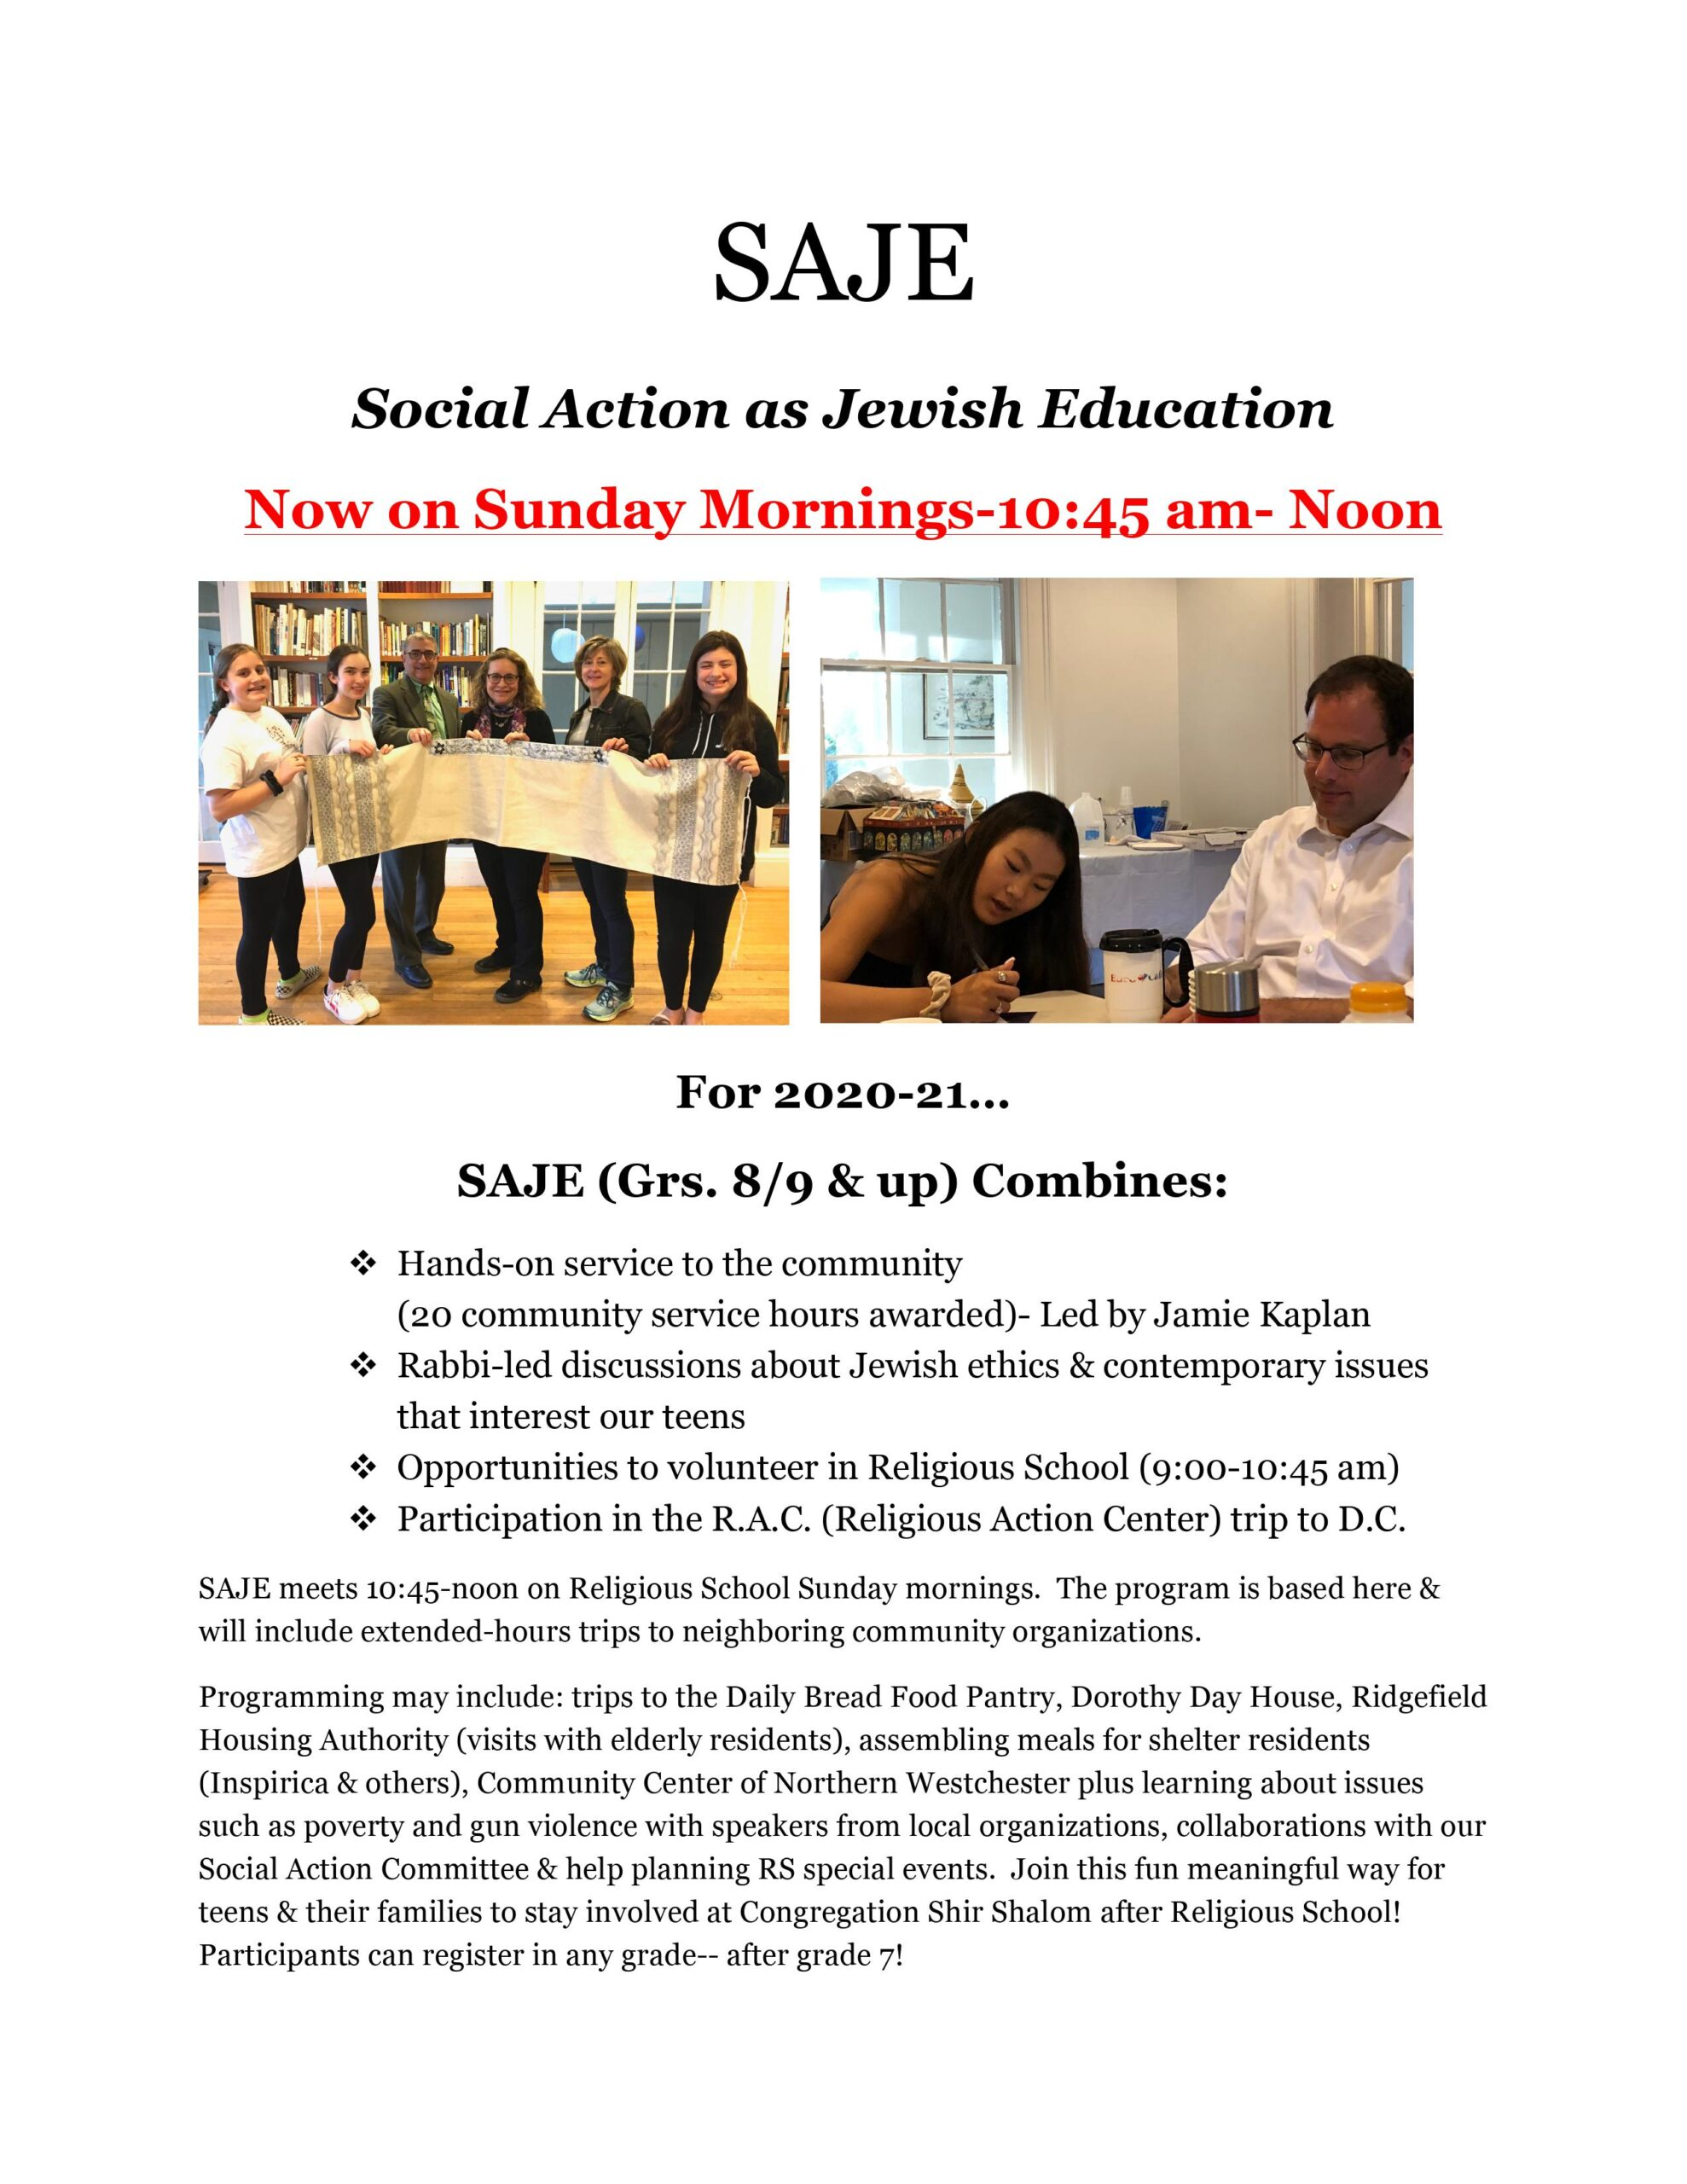 SAJE Social Action as Jewish Education click the image to access Registration Forms